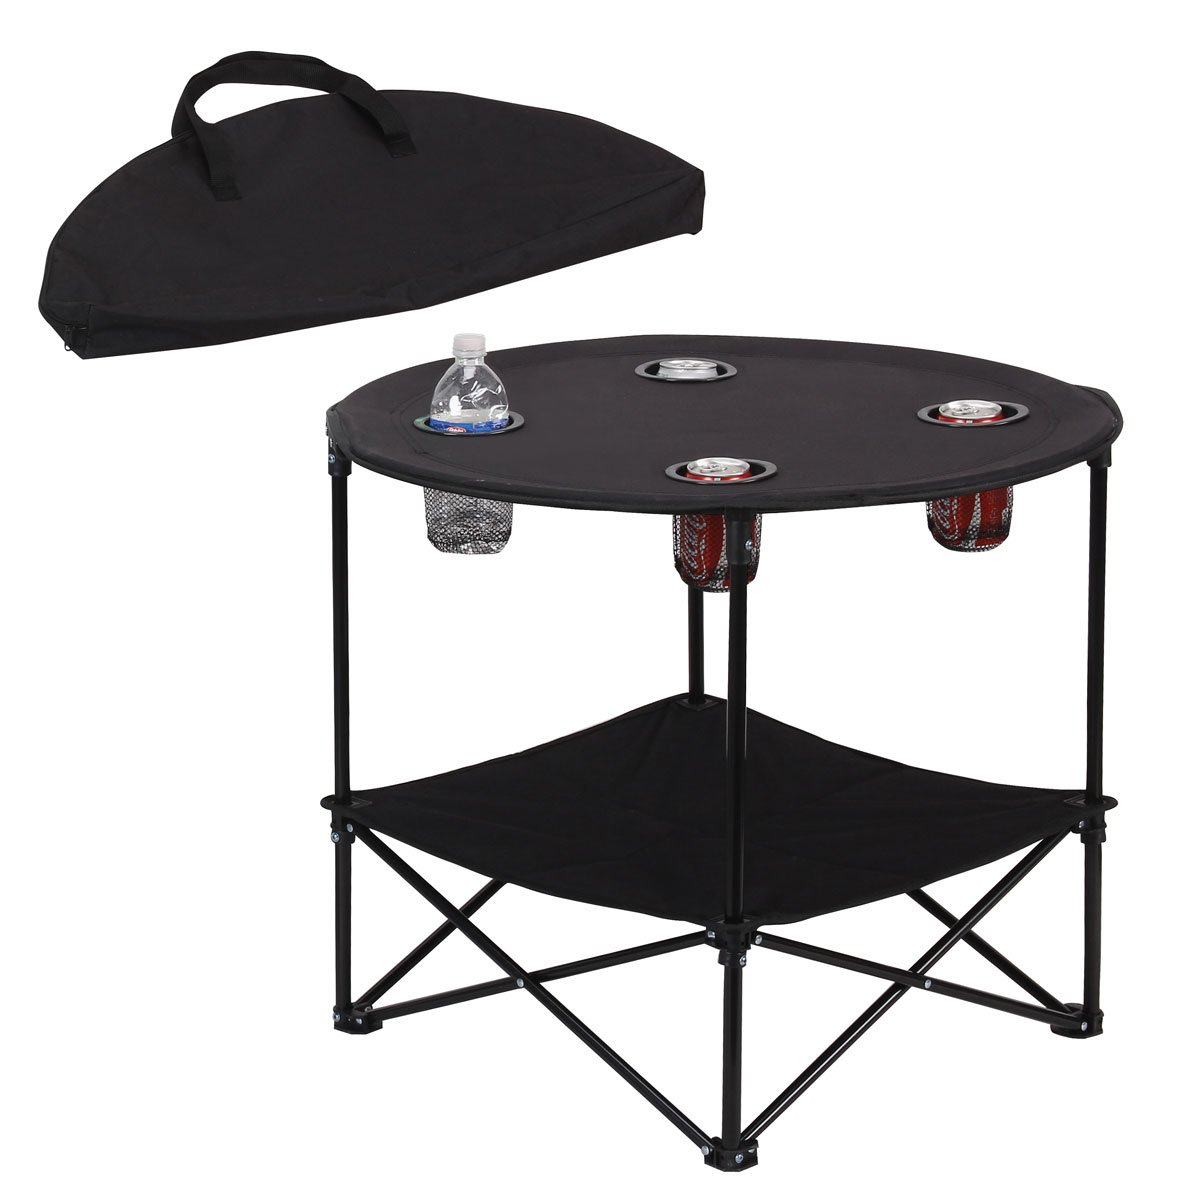 Preferred Nation Folding Table, Polyester with Metal Frame, 4 Mesh Cup Holders, Compact, Convenient Carry Case Included – Black